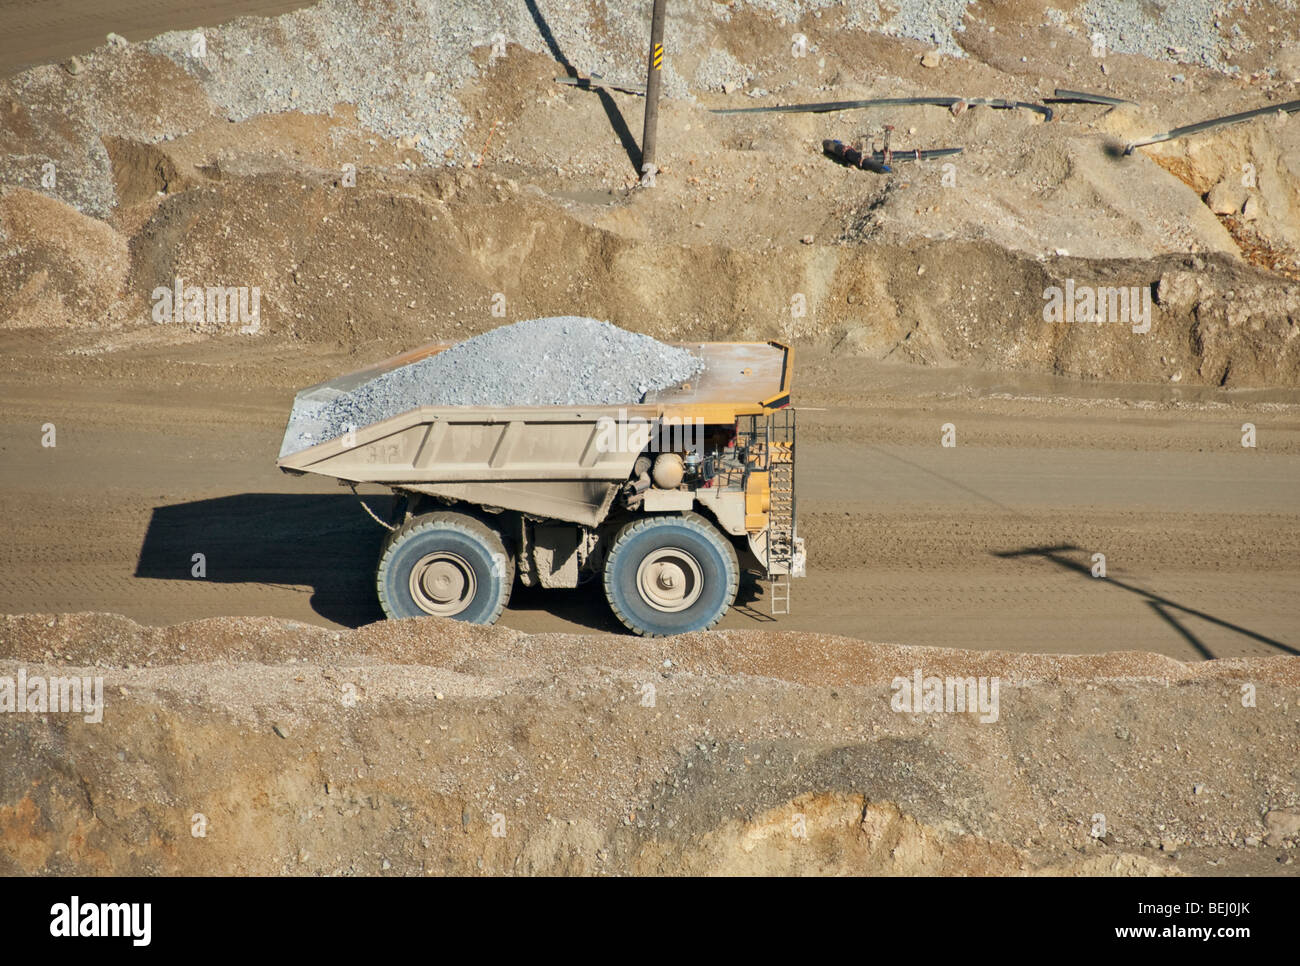 Utah Kennecott Utah Copper Bingham Canyon Mine world's largest man-made excavation haultruck load capacity 320 - Stock Image